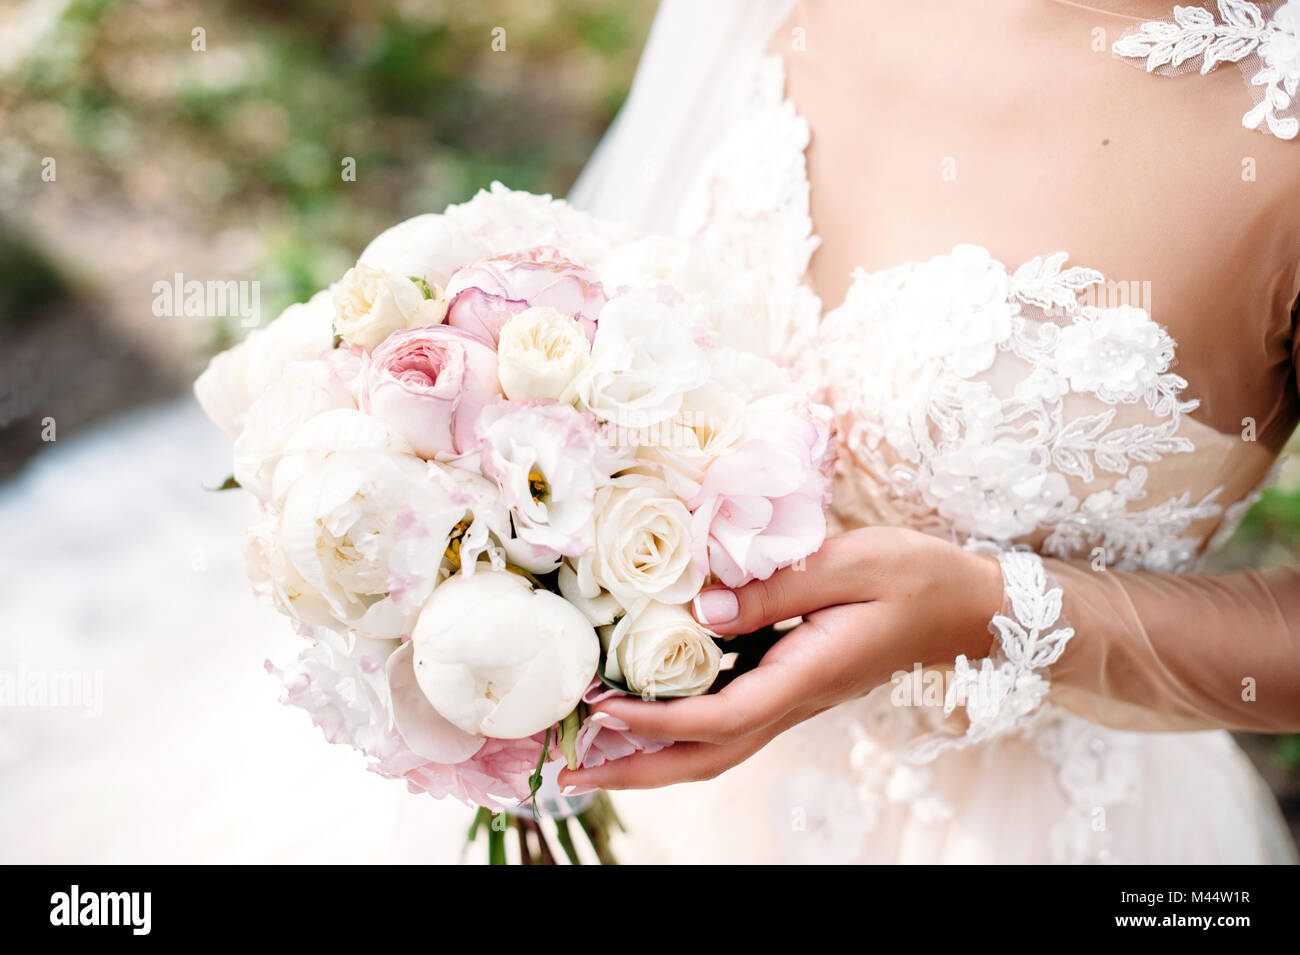 Bride holding wedding peony bouquet in your hands. White and pink flowers. Close-up Stock Photo